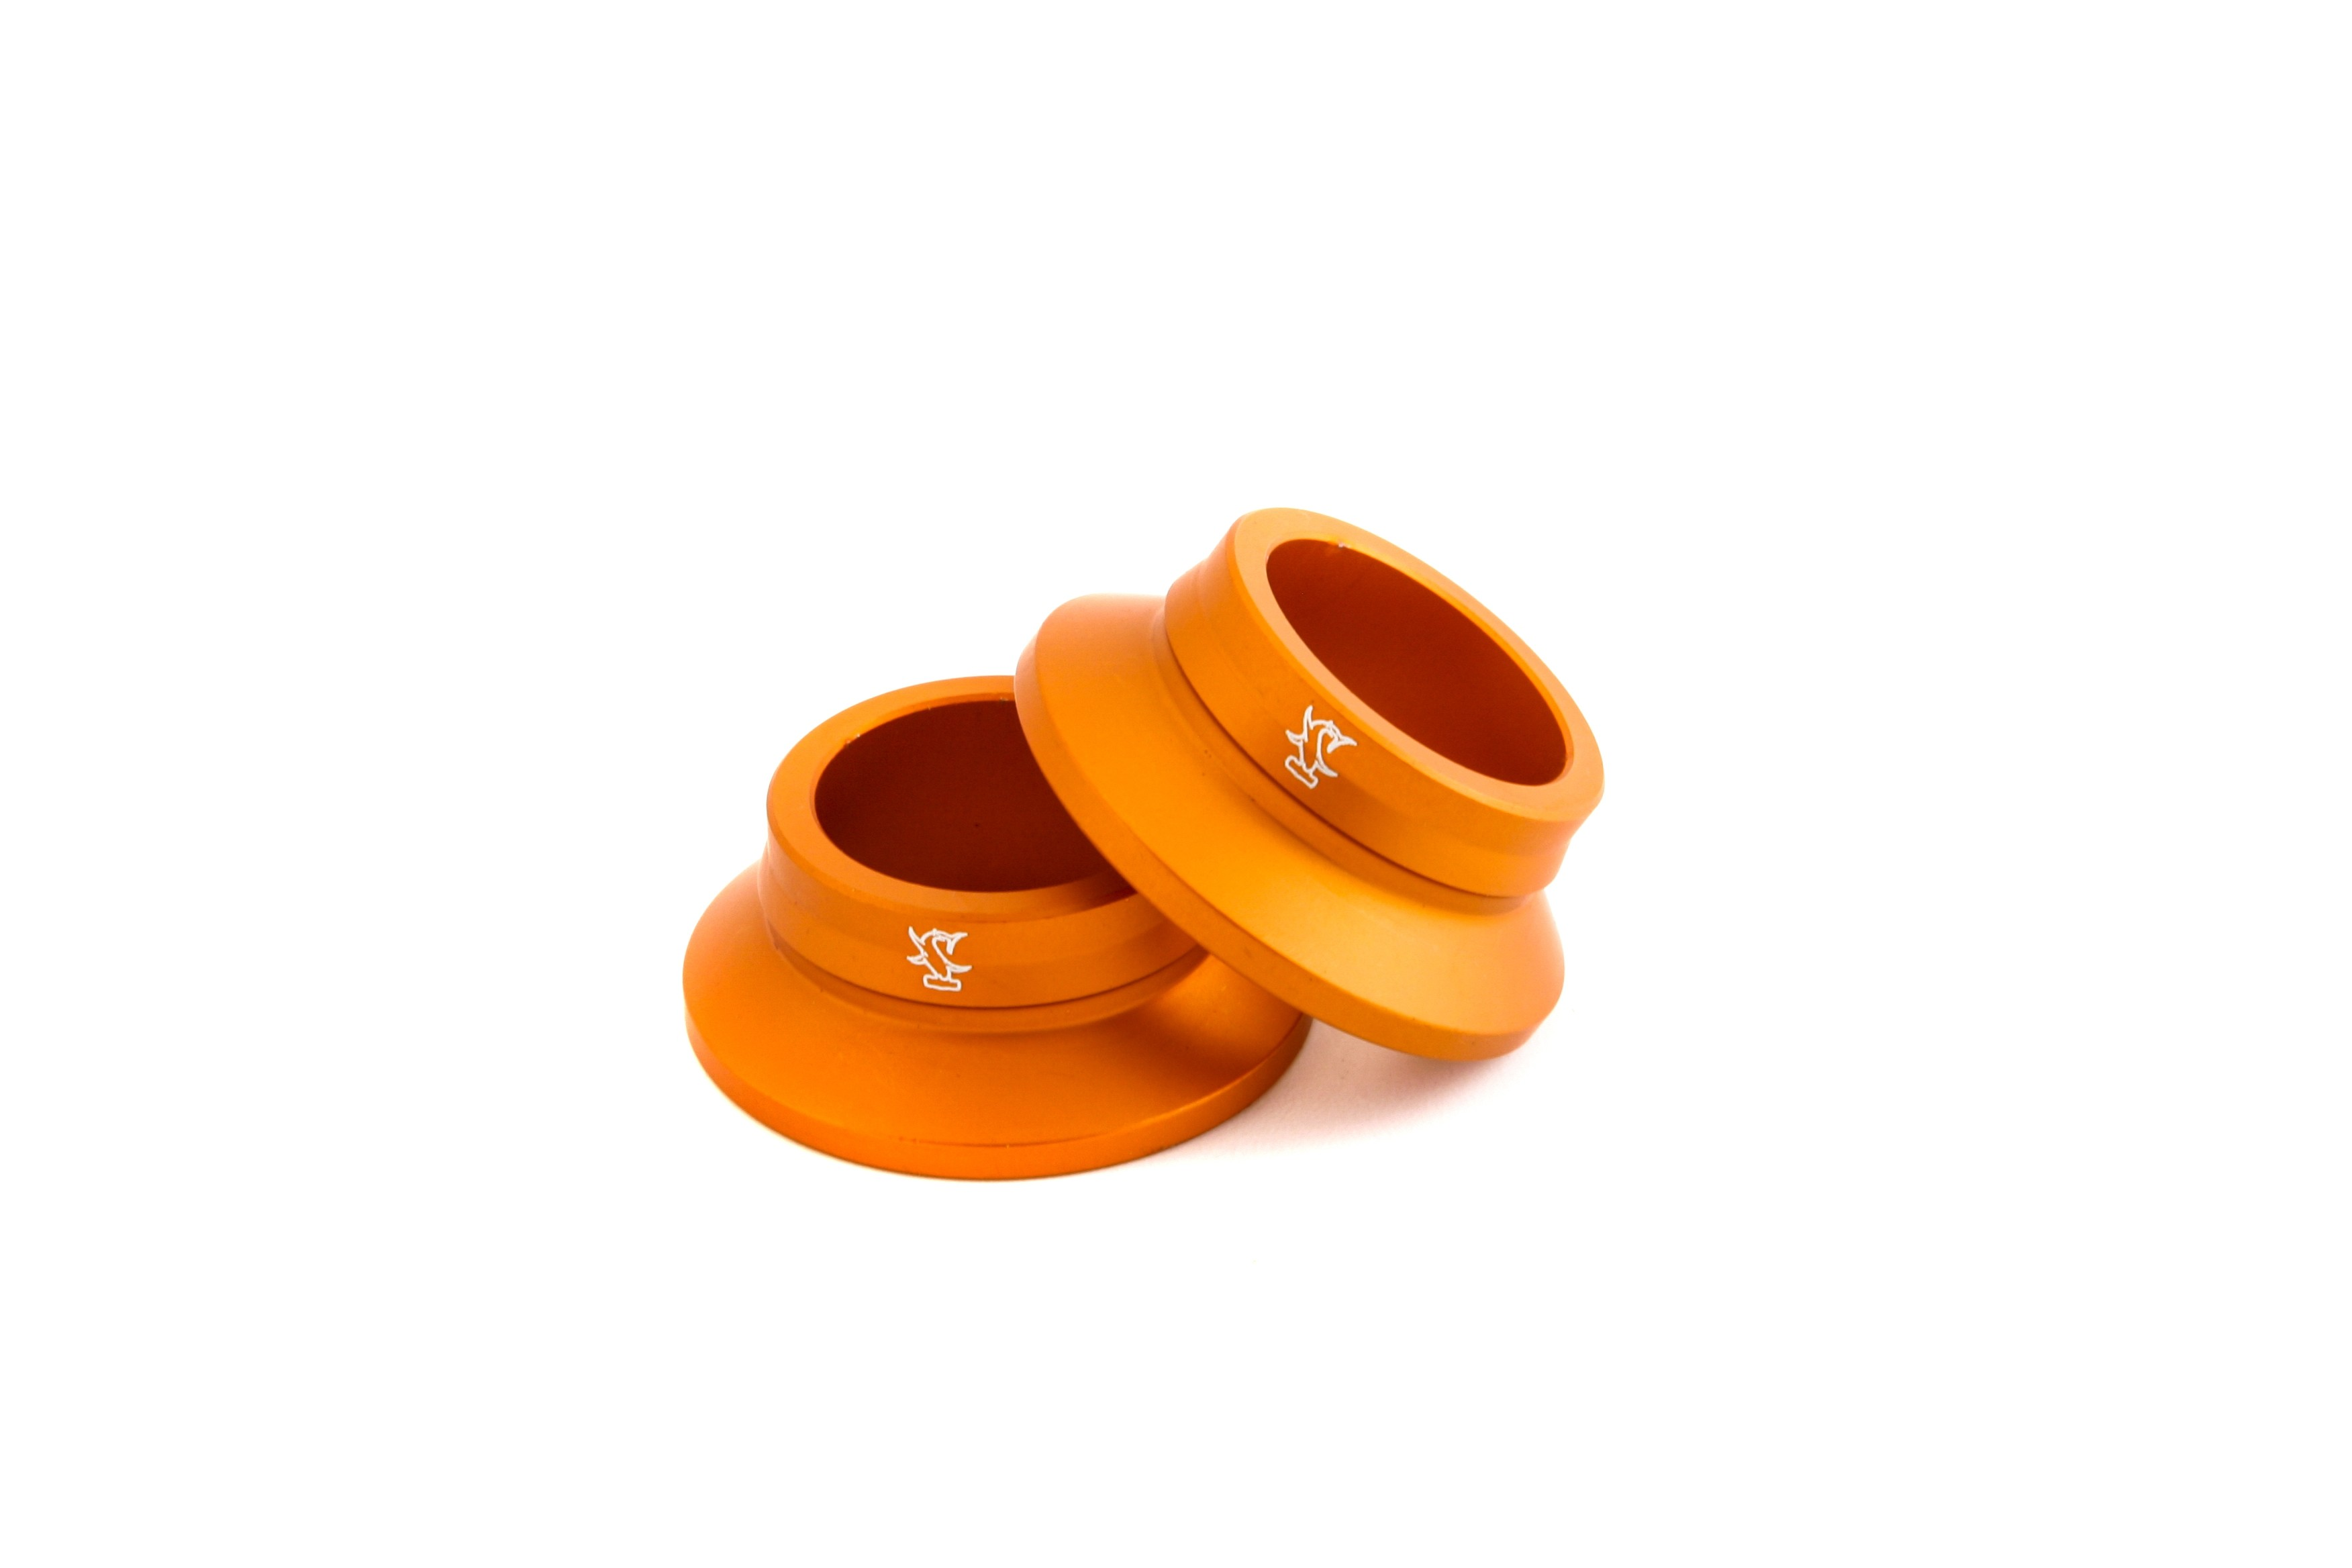 KTM/Husqvarna Rear Type 2 Wheel Spacers